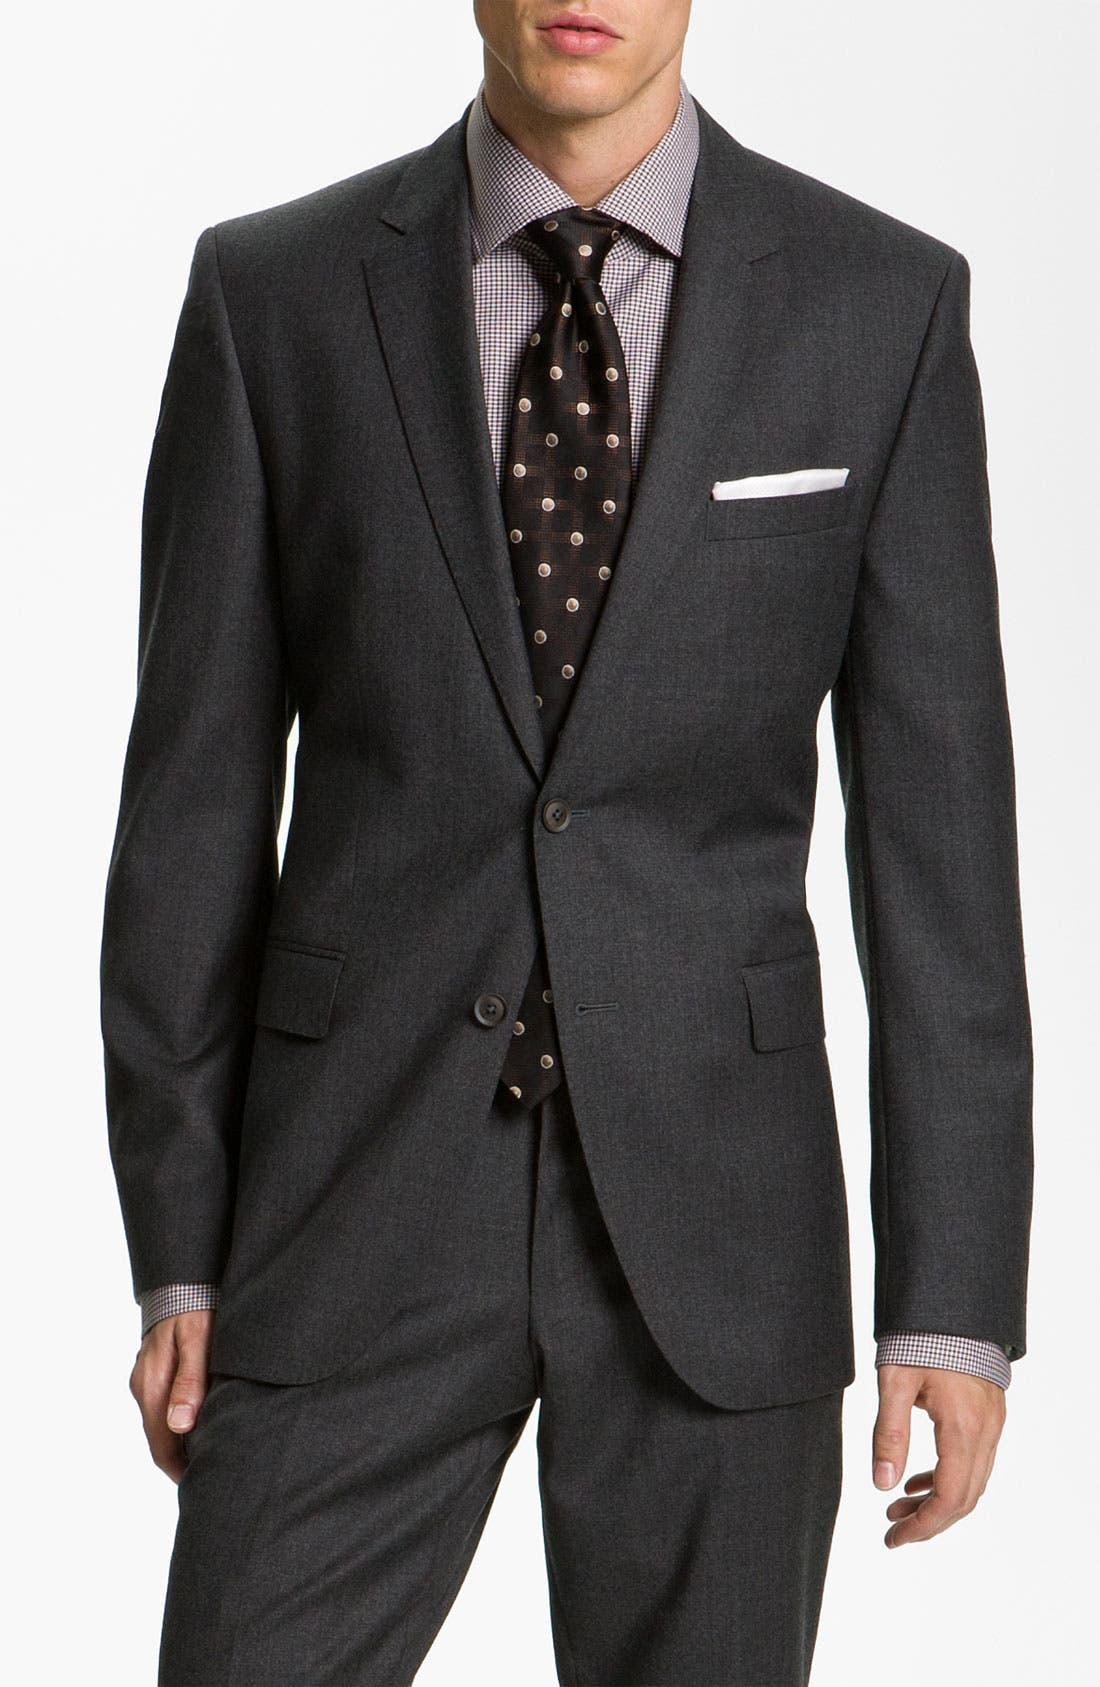 Alternate Image 1 Selected - BOSS Black Suit, Dress Shirt, & Tie